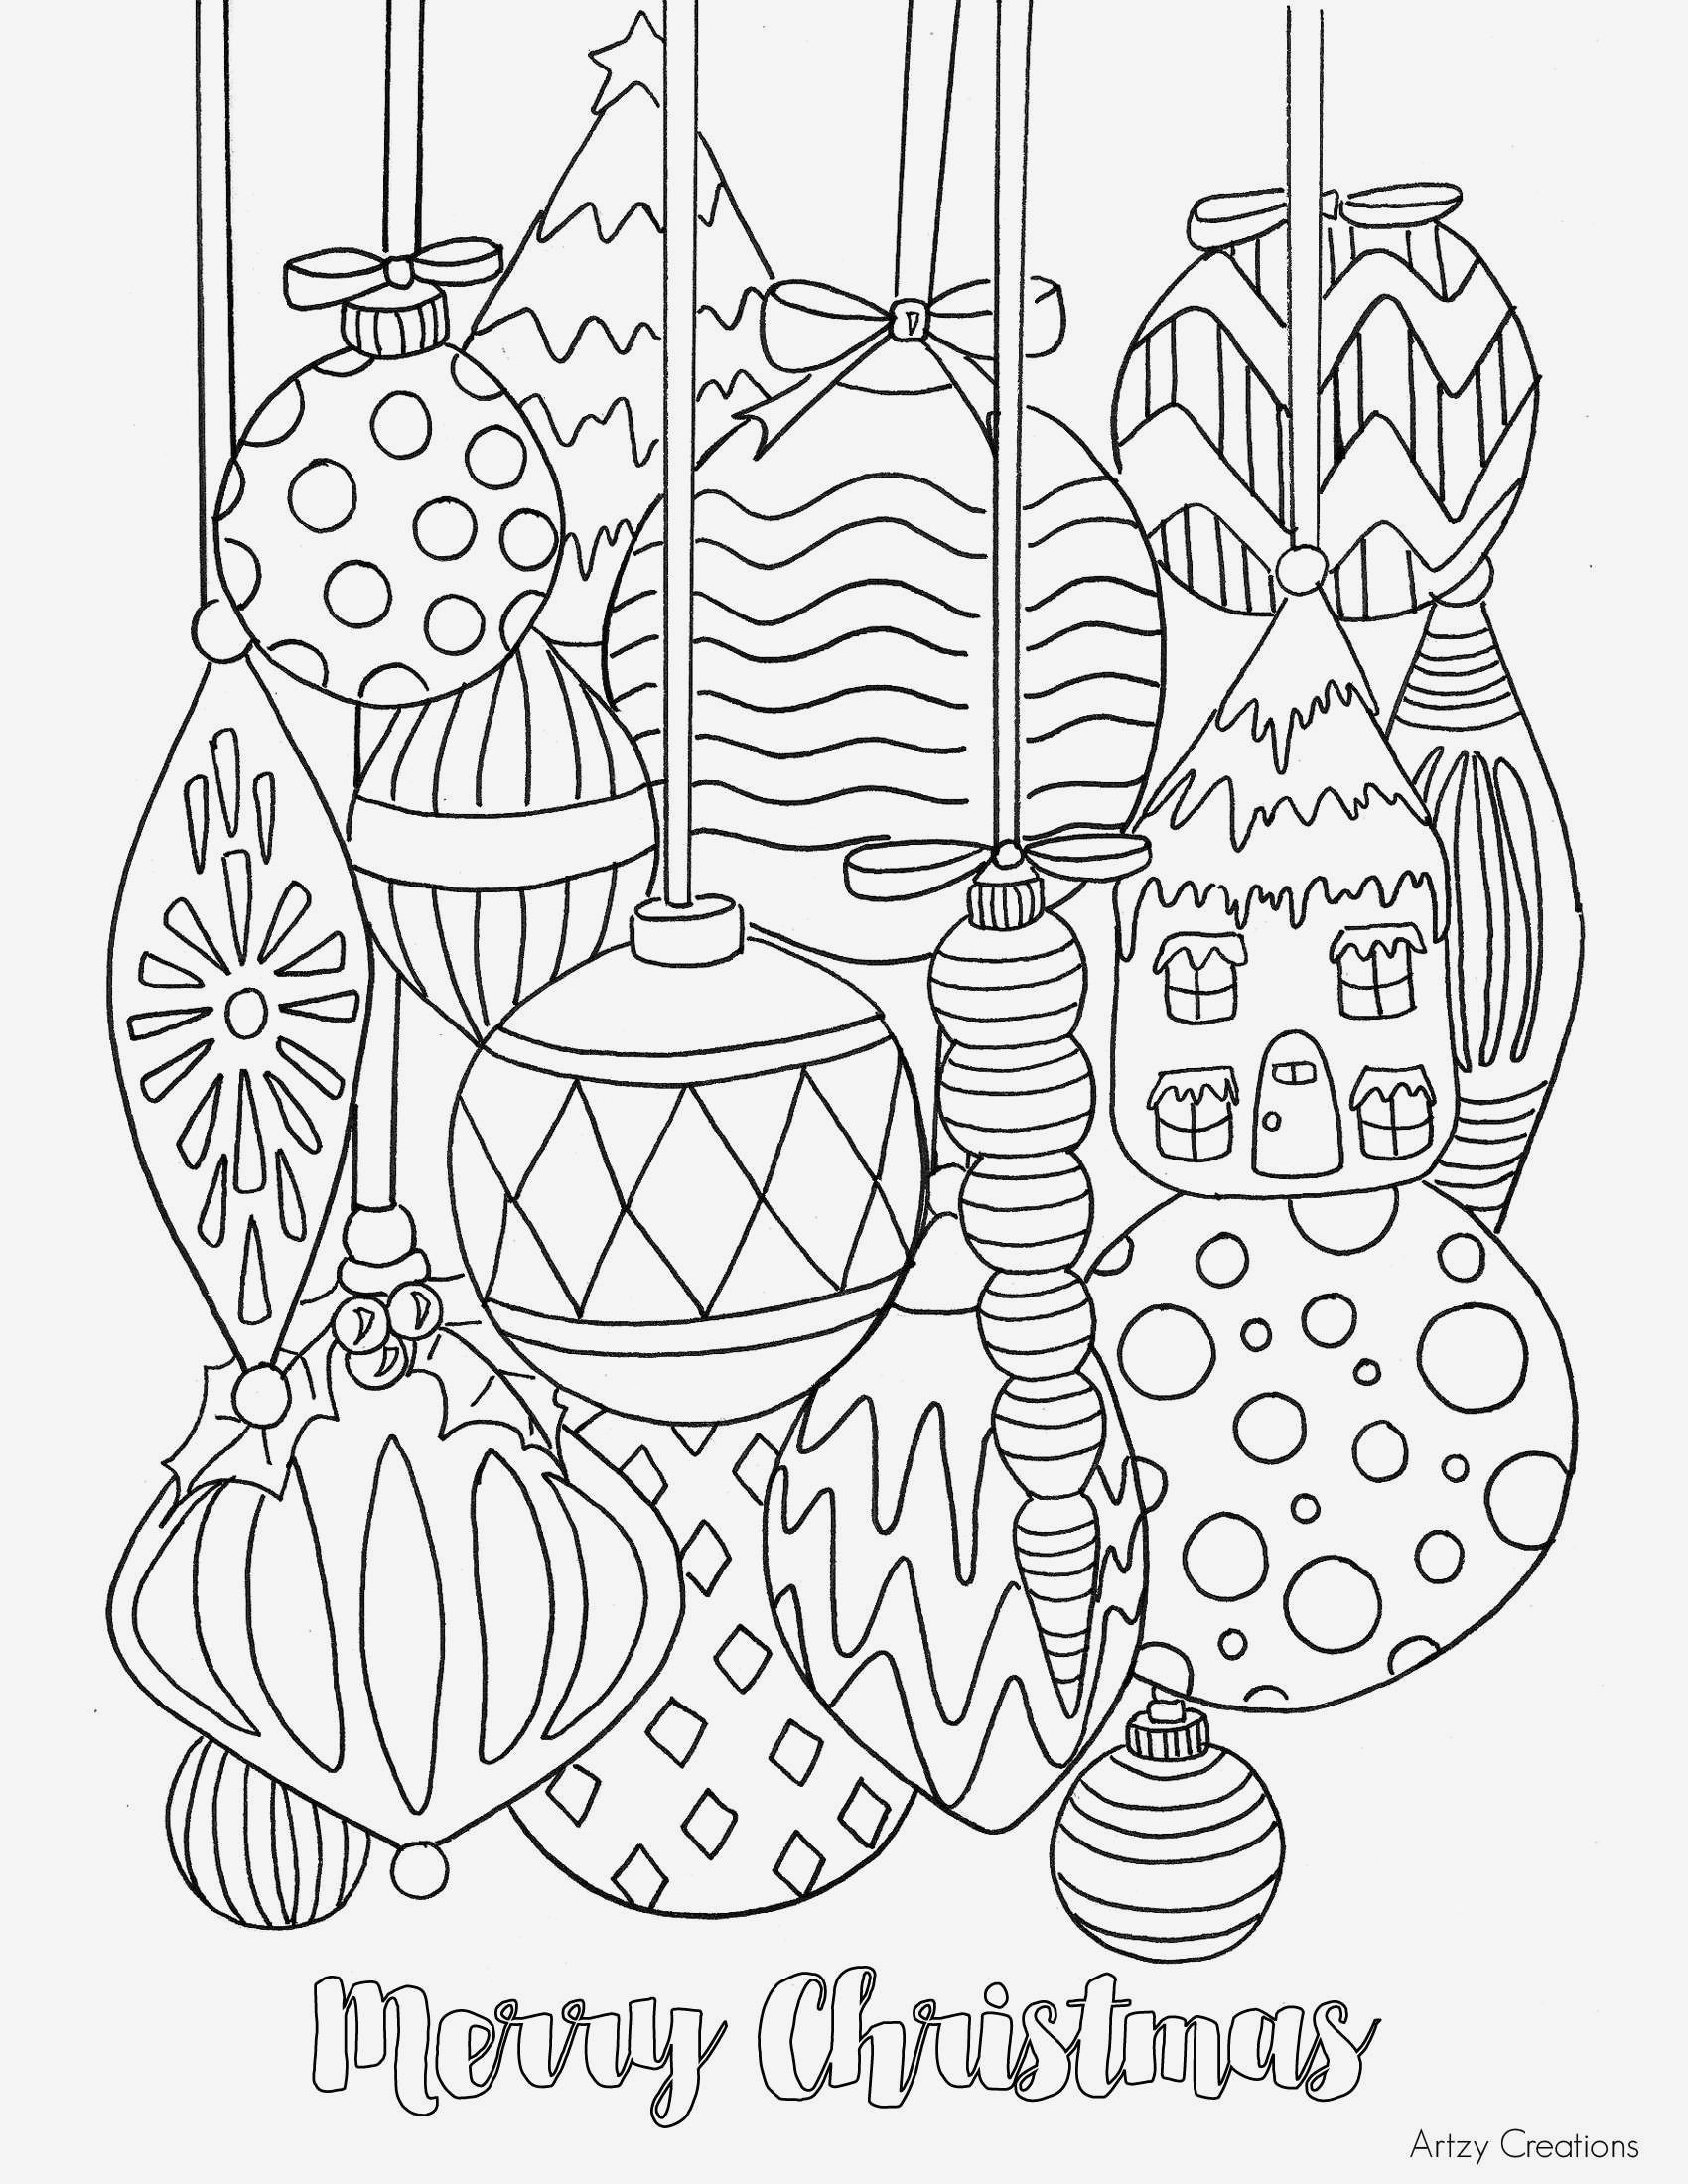 73 Best Of Images Of Lego Batman Coloring Printable Christmas Coloring Pages Free Christmas Coloring Pages Christmas Coloring Pages